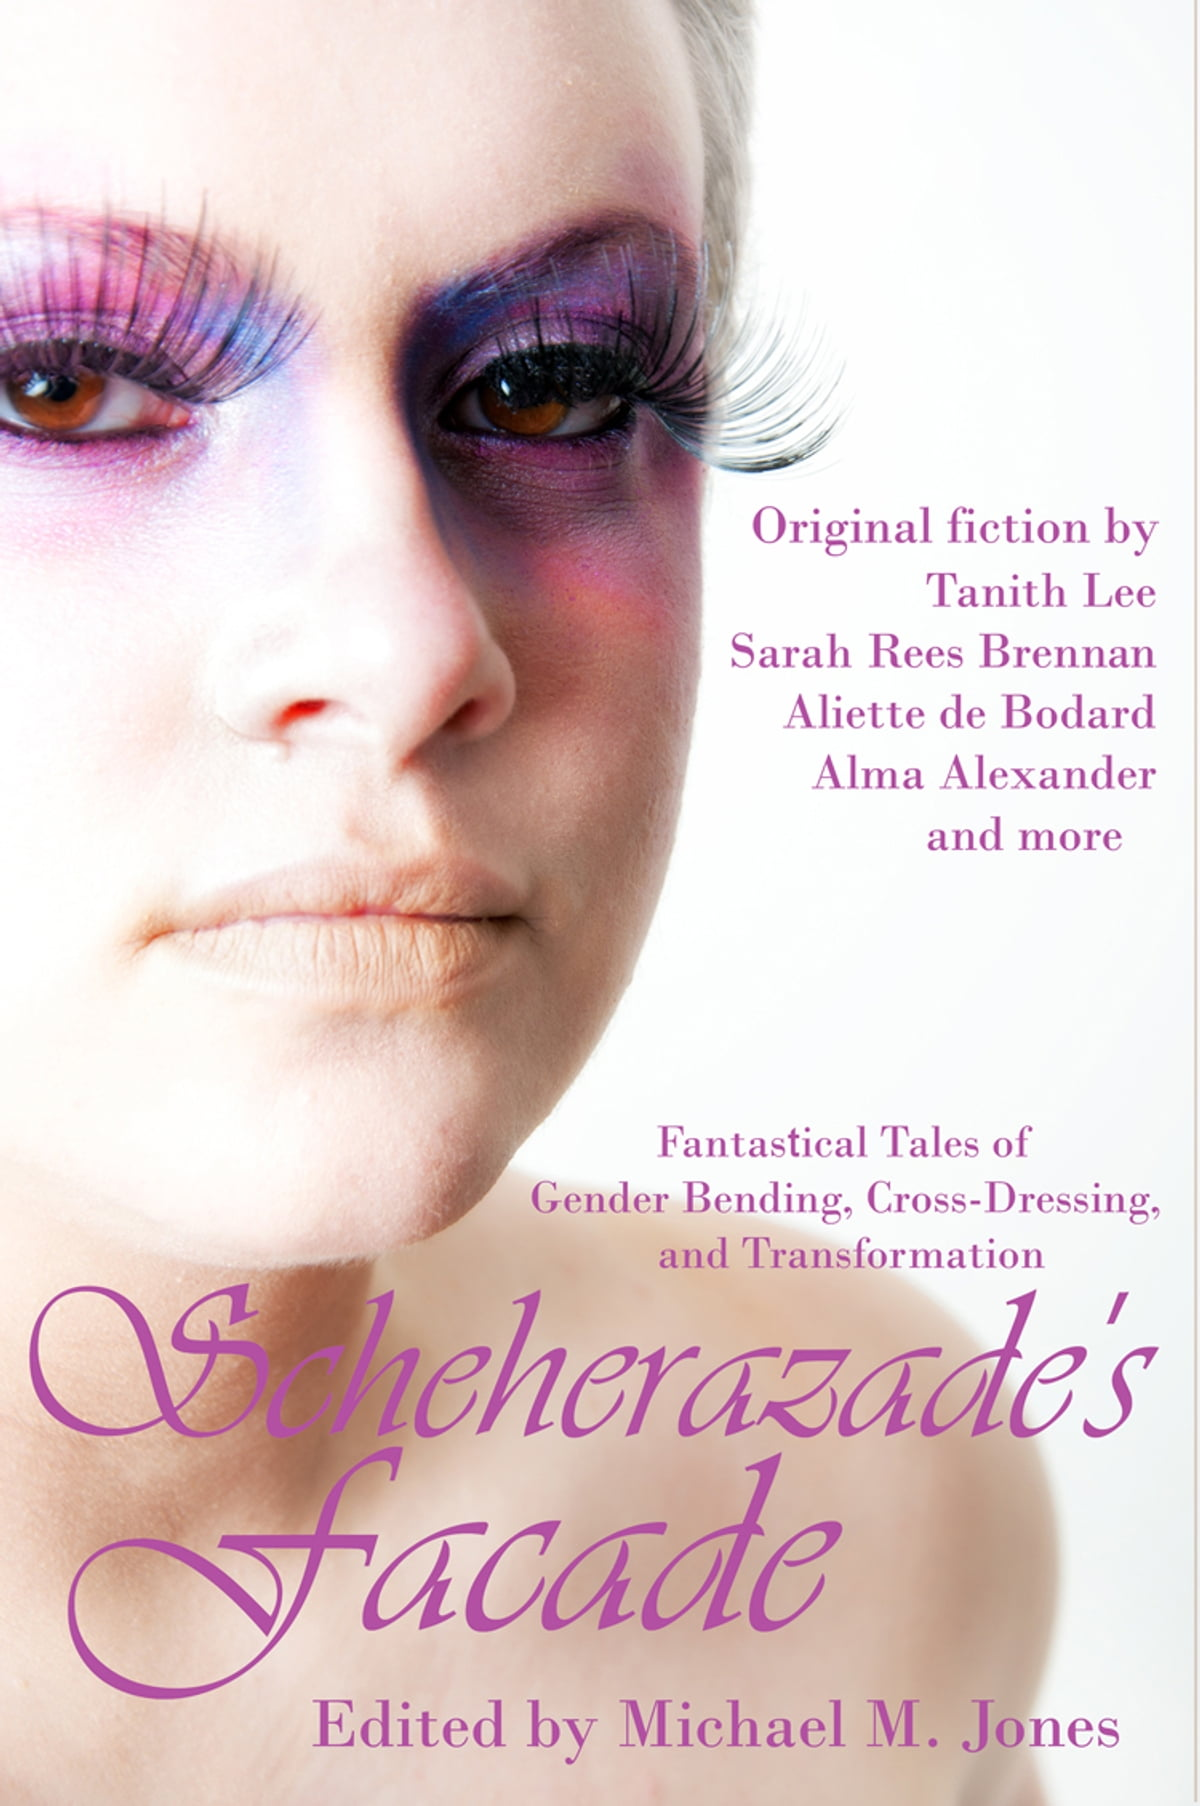 Scheherazade's Facade eBook by Michael M. Jones - 9781613900598 | Rakuten  Kobo